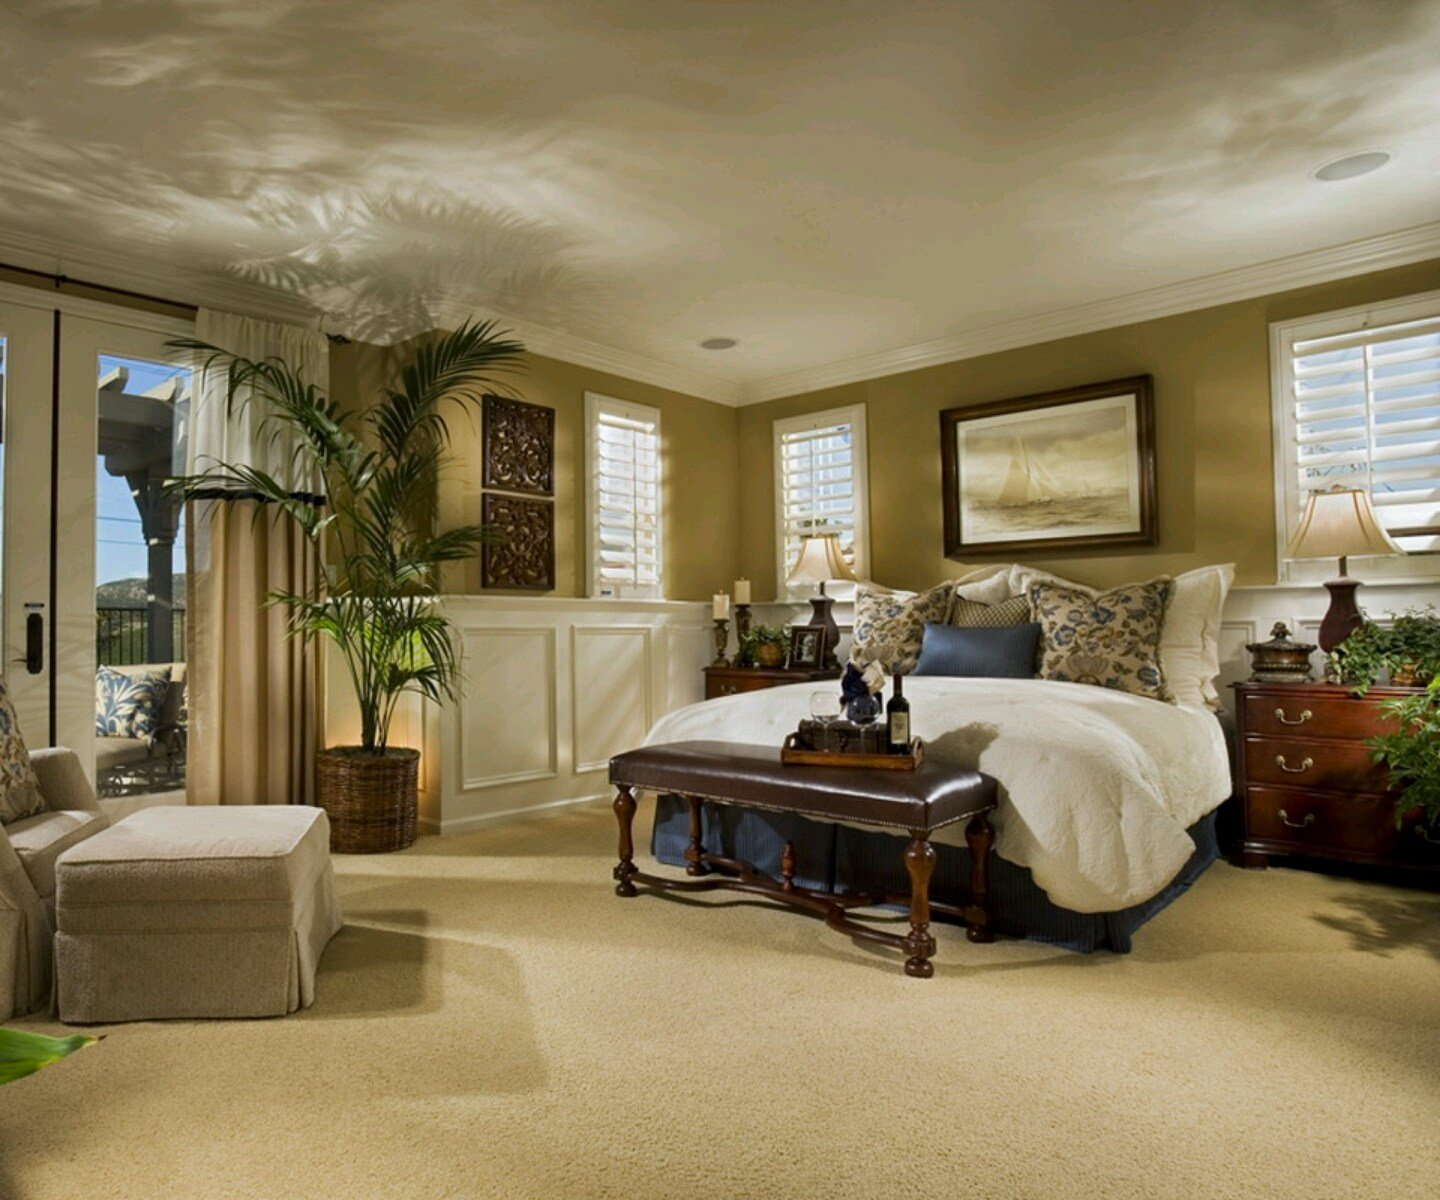 Best Biggest Bedroom World Exclusive Home Living Now 78959 With Pictures